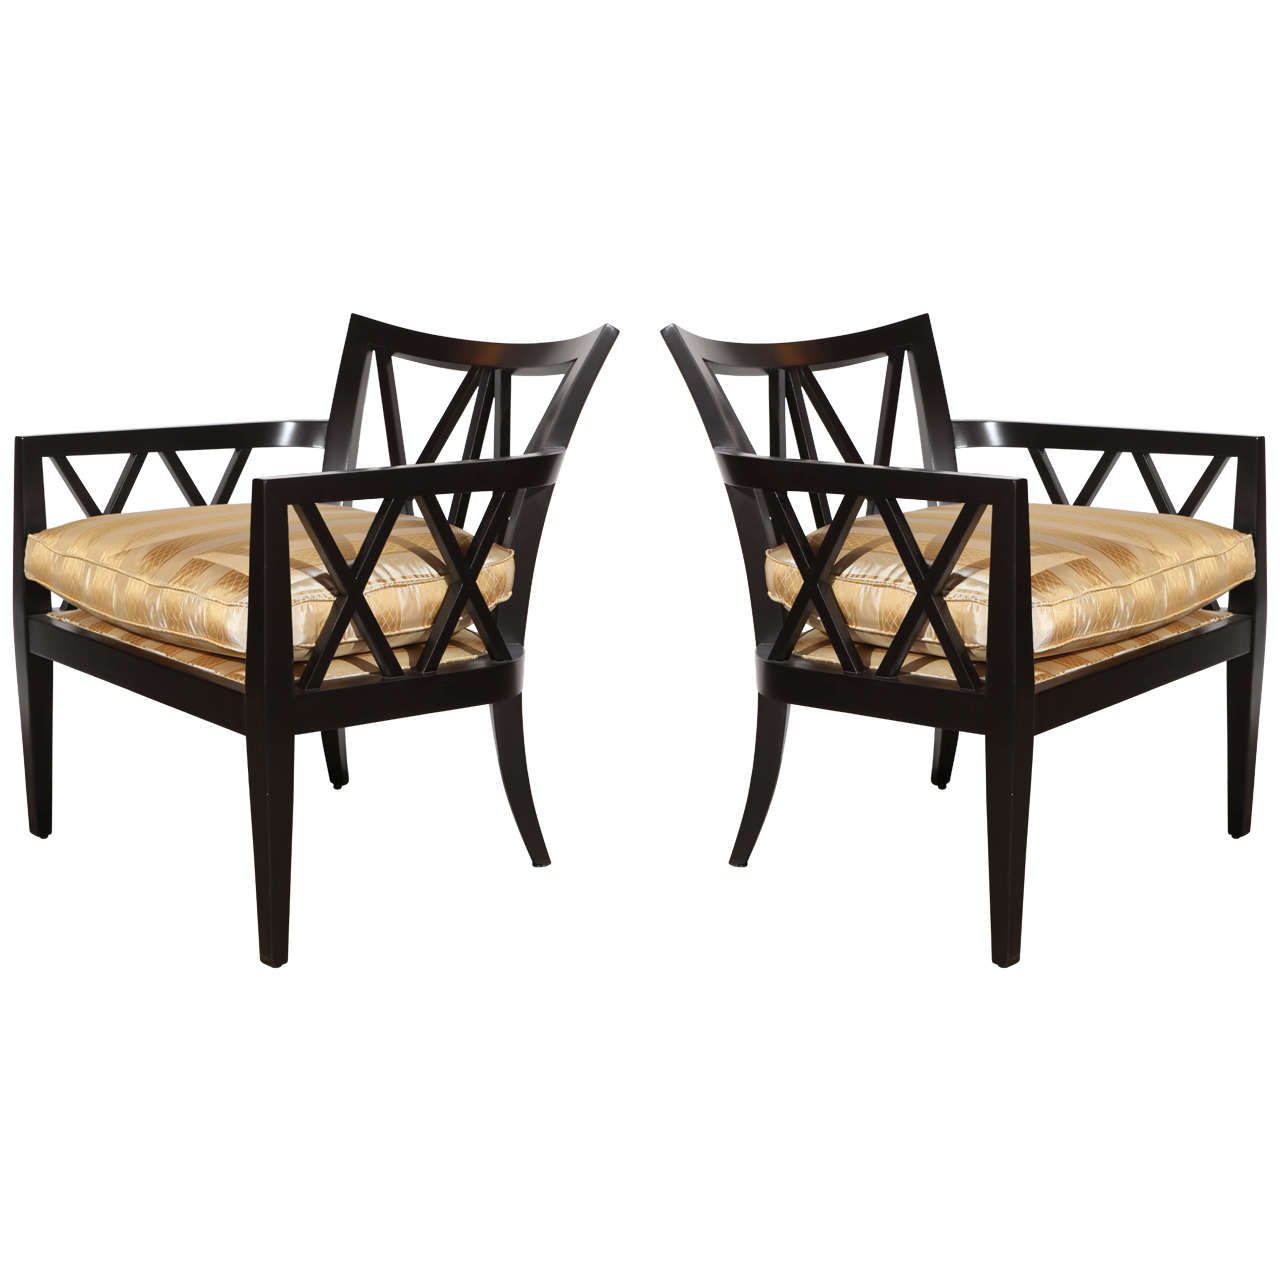 Pair of Double X Back Armchairs by Barbara Barry for Baker